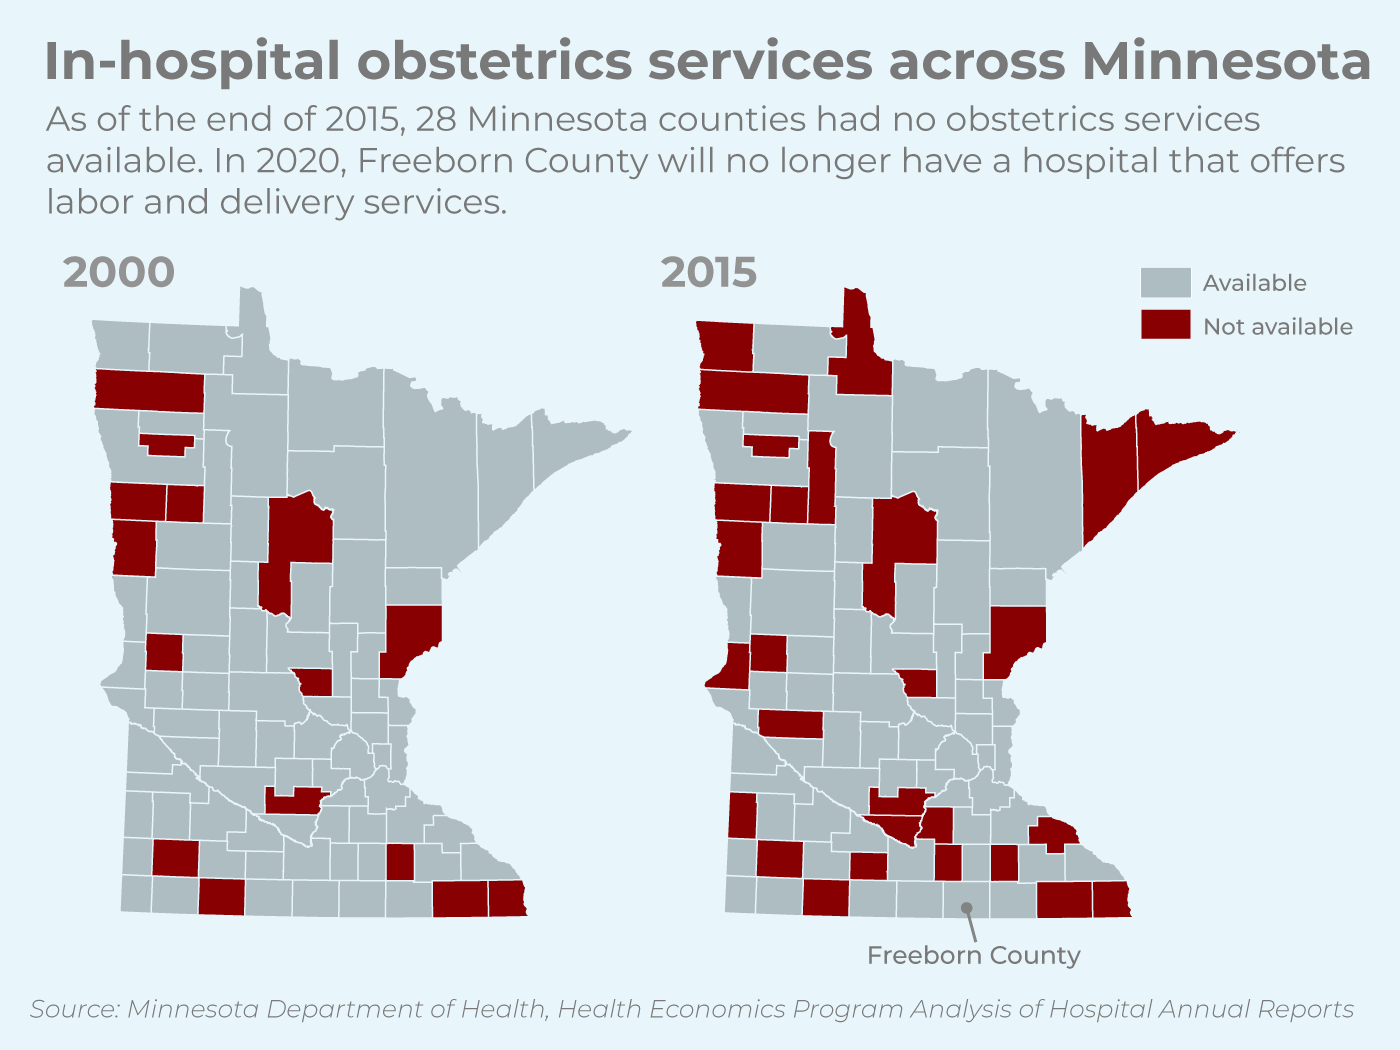 In-hospital obstetrics services across Minnesota.